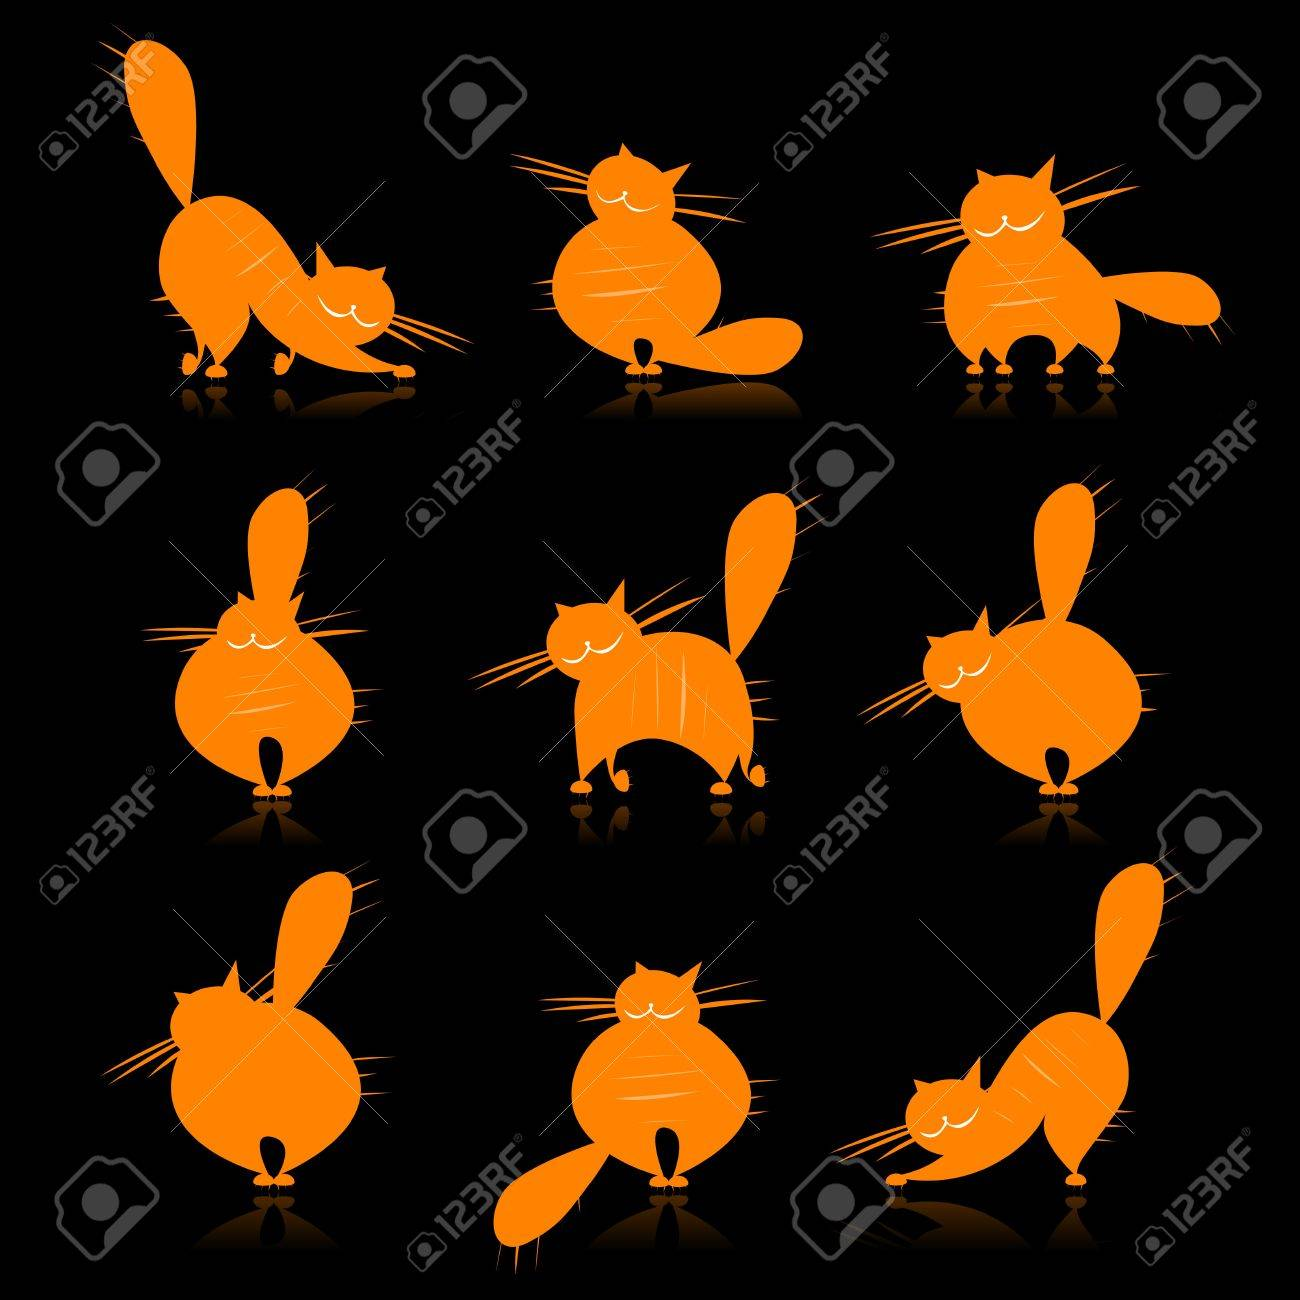 Funny orange fat cats silhouettes for your design Stock Vector - 7715256